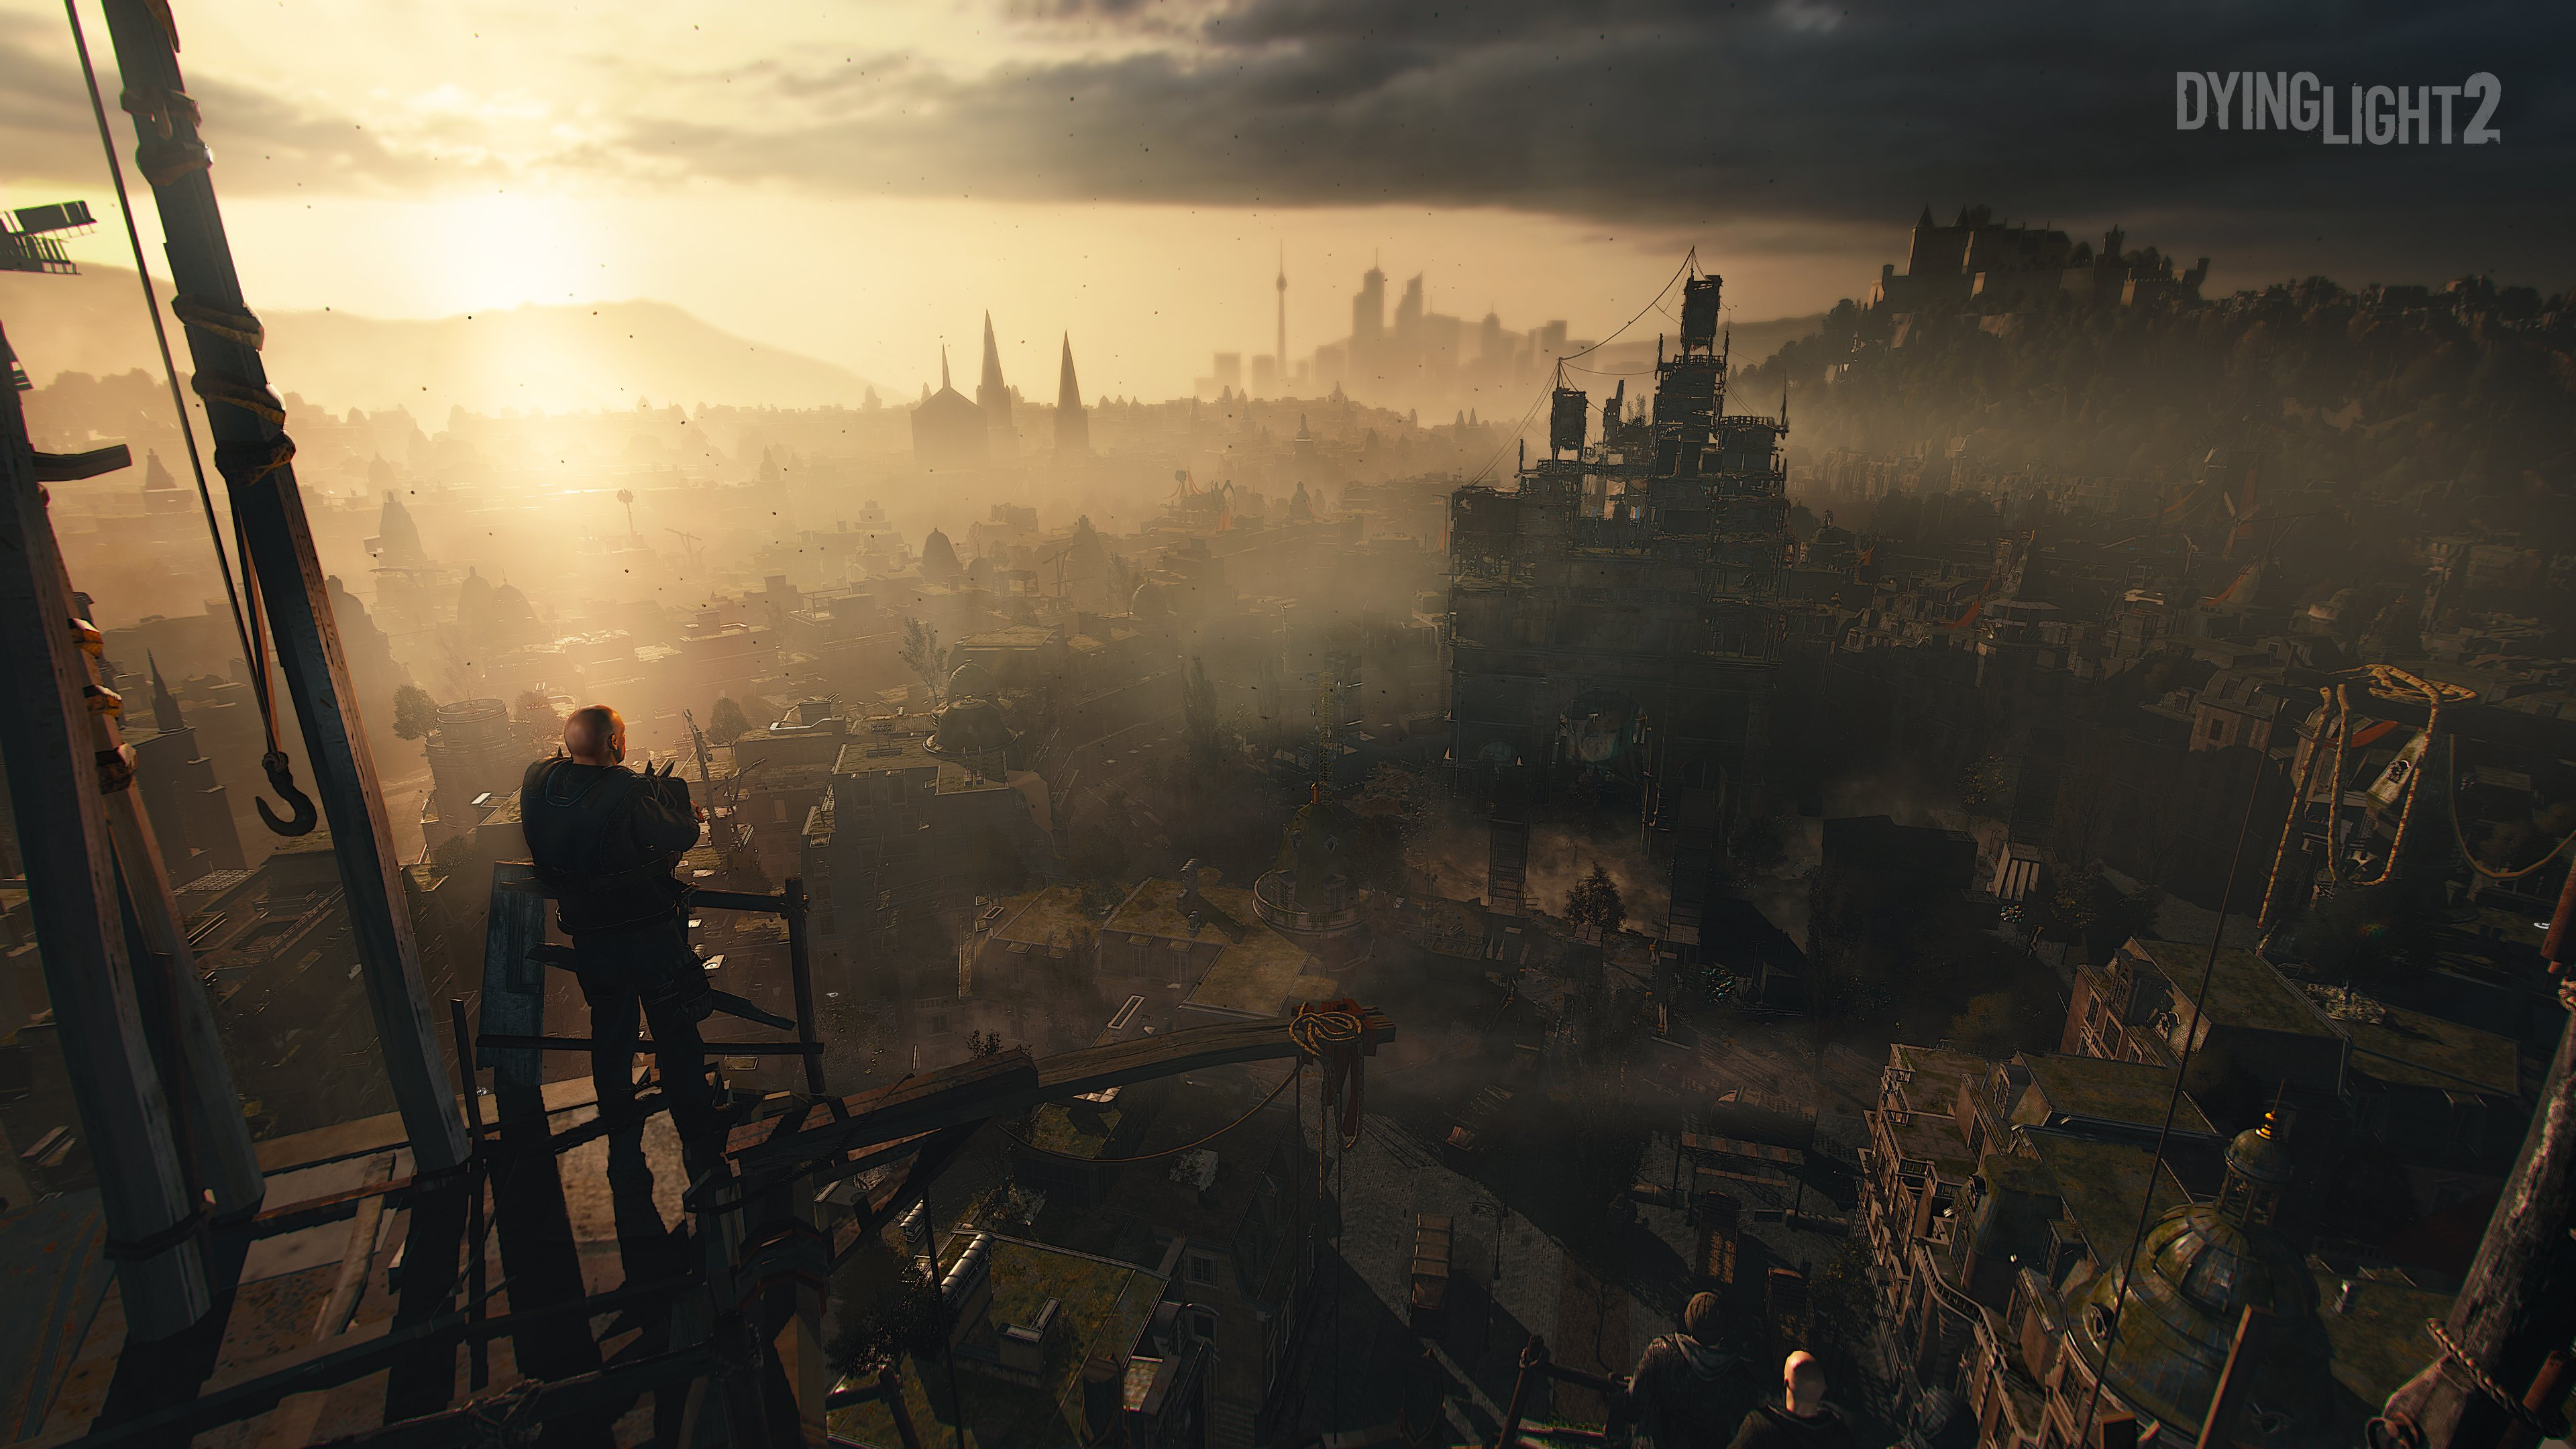 Dying Light 2 Background Wallpaper 69779 3840x2160px